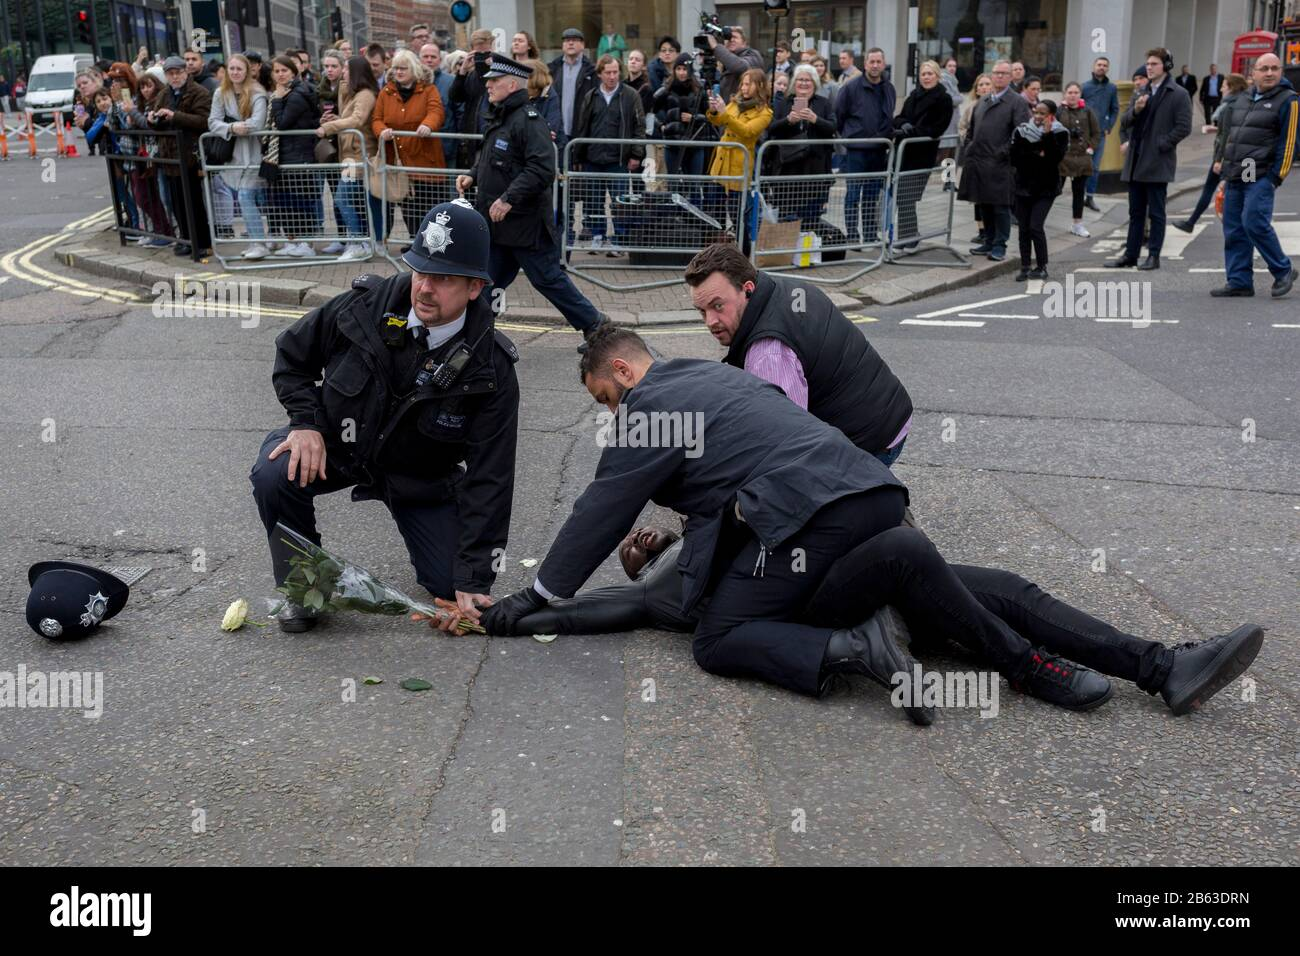 Pro-Democracy protesters with a Free Southern Cameroon group are tackled by Metropolitan police officers after dashing out from behind barriers outside Westminster Abbey during the Commonwealth Day service lead by the Queen and including members of the British royal family and Commonwealth ambassadors and dignitaries. They are holding placards saying Free President Ayuktabe Julius' (an Ambazonian separatist leader) and 'Justice for Babanki' (referring to allegations of soldier killings on villagers), on 9th March 2020, in London, England. At this, their last royal duty before stepping down for Stock Photo